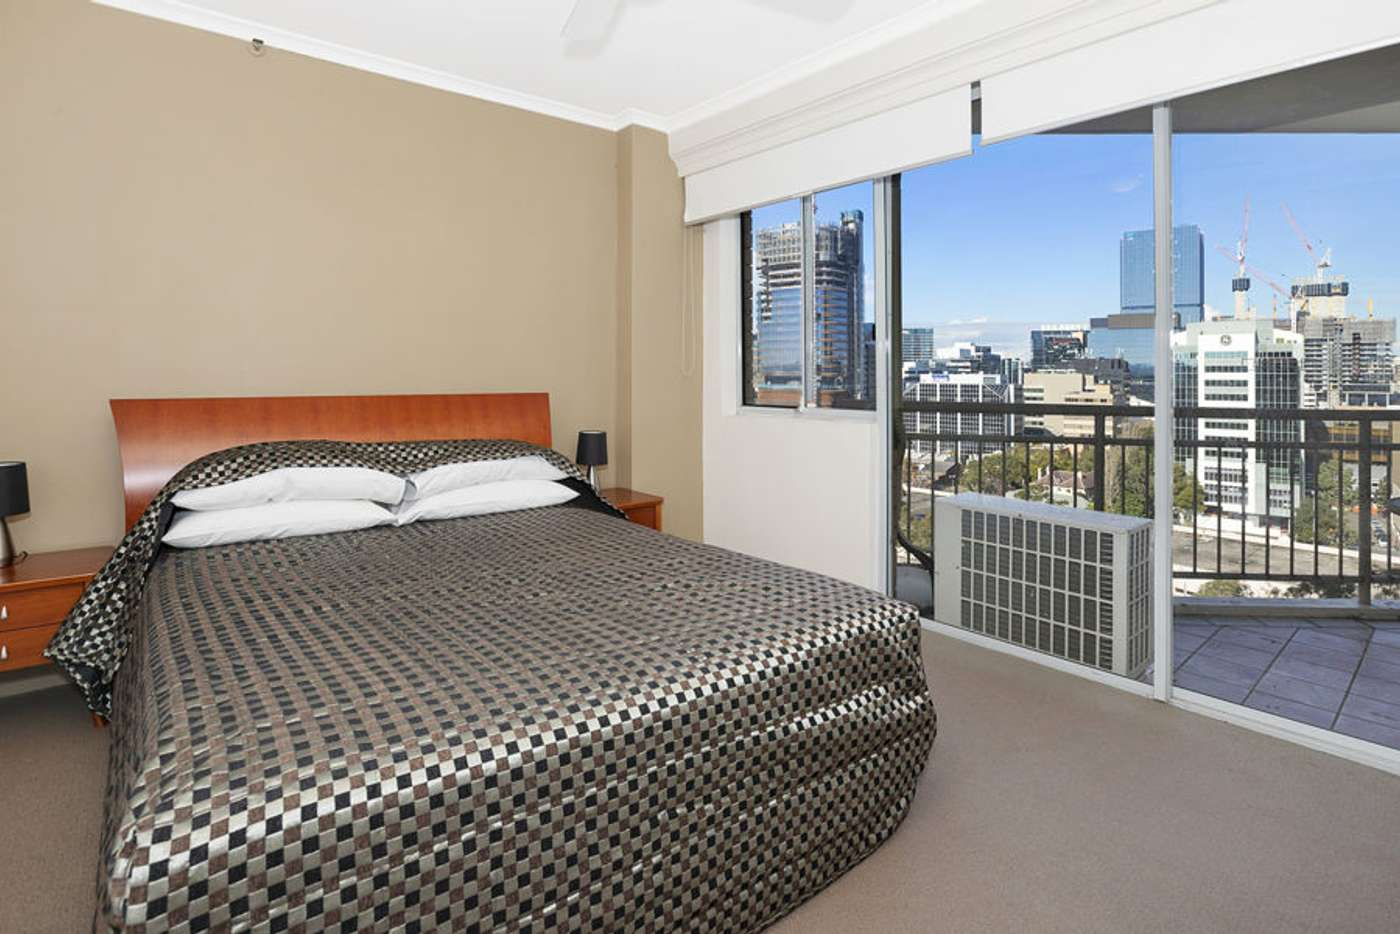 Sixth view of Homely unit listing, 105/3 Sorrelle Street, Parramatta NSW 2150